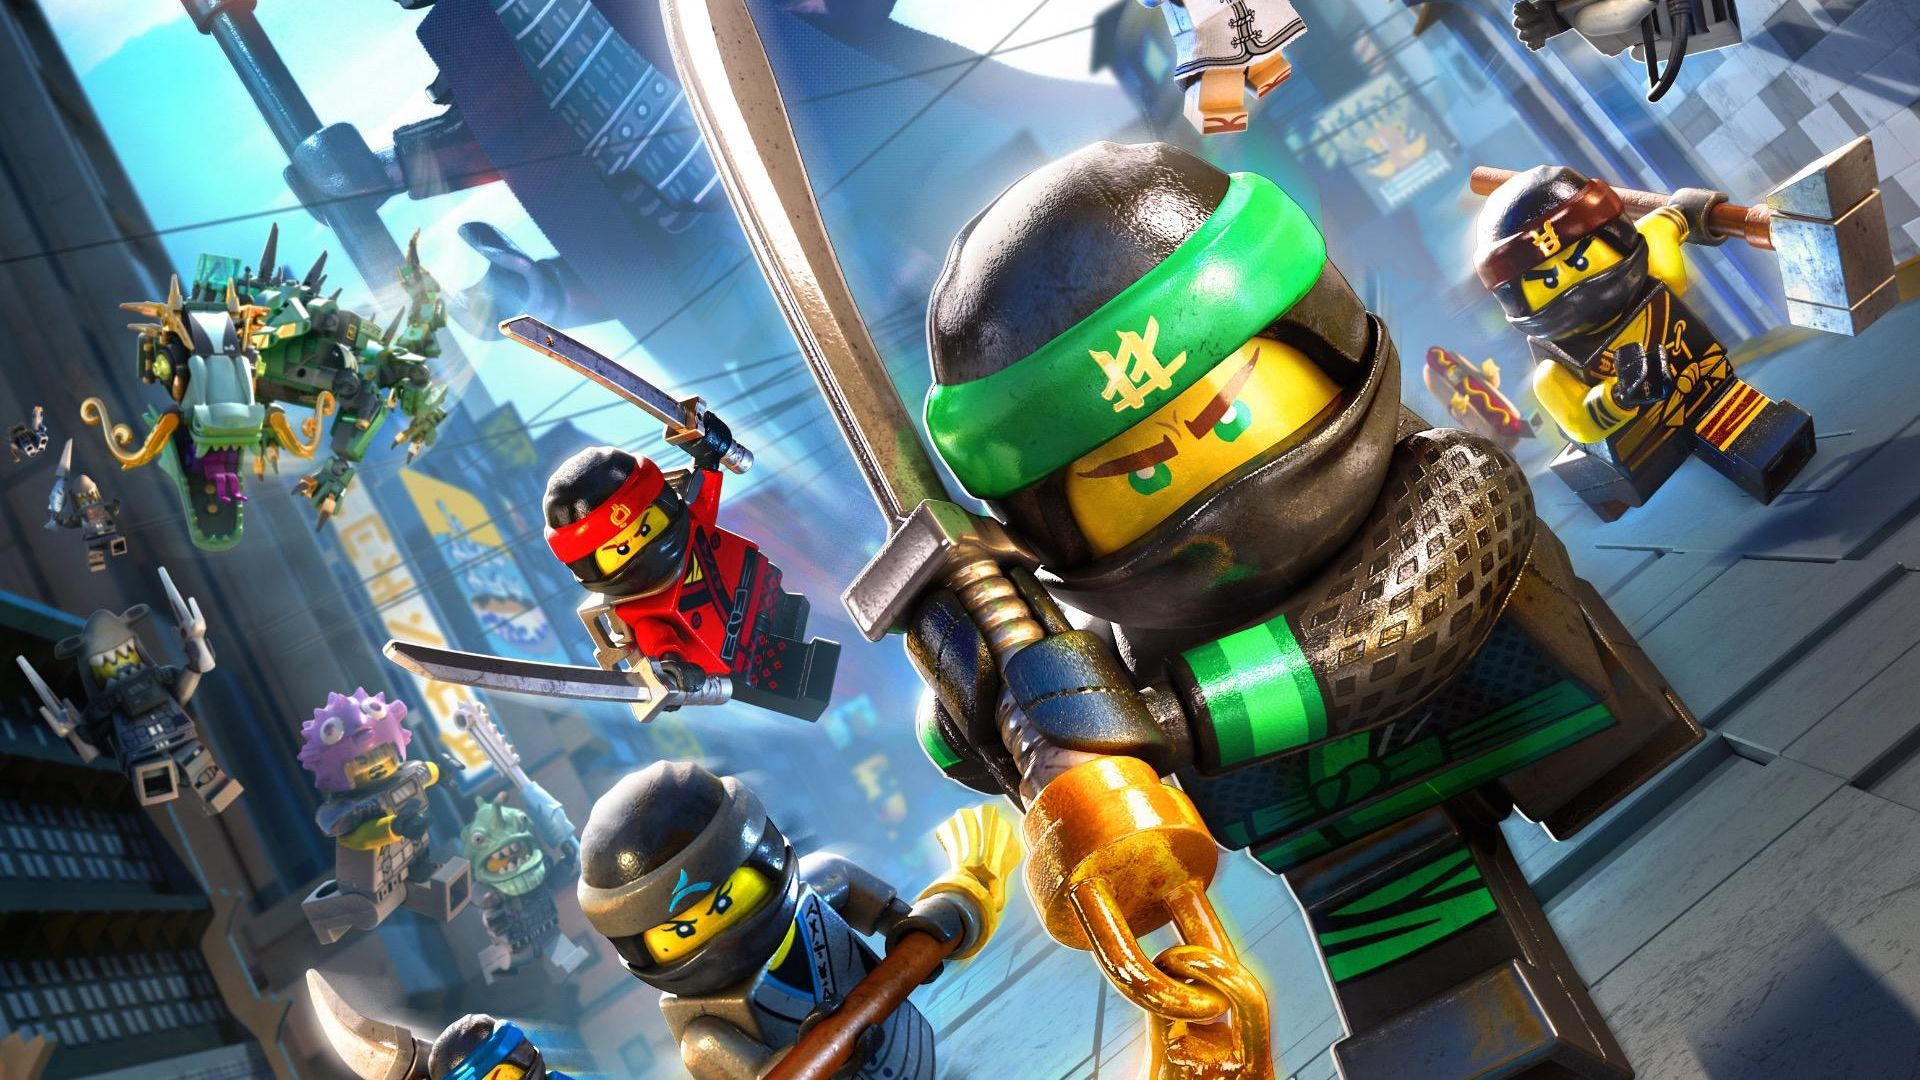 1920x1080 The Lego Ninjago Movie Video Game Proves The Series Still Has A Few ...